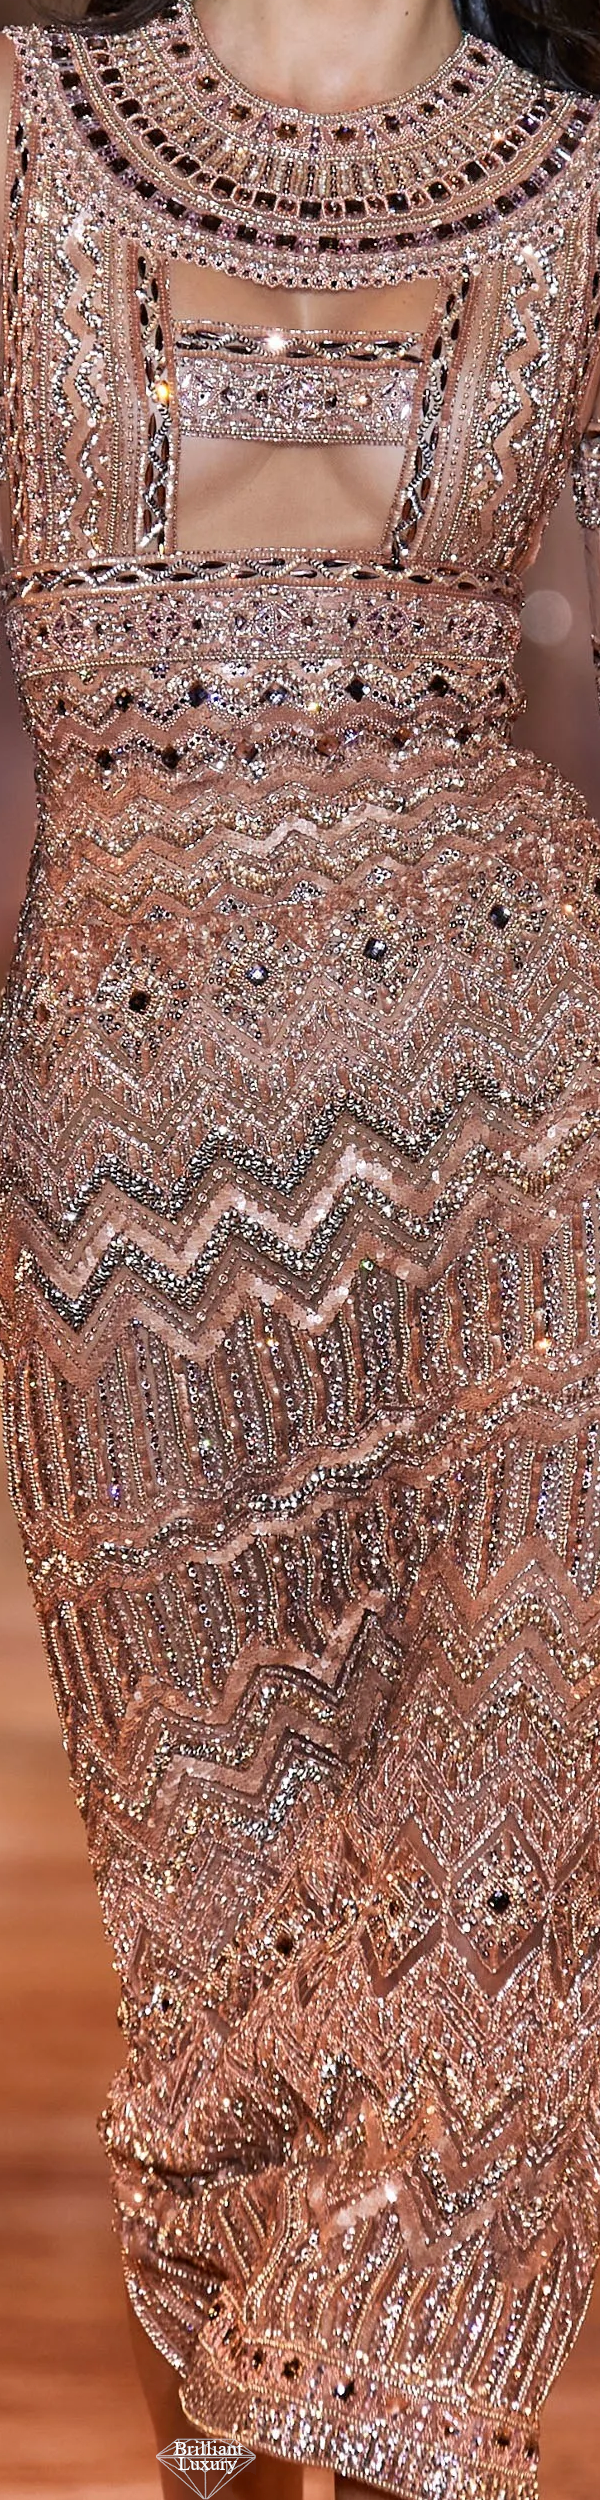 Zuhair Murad Spring 2020 Couture Embroidered Peach Gown #fashion1